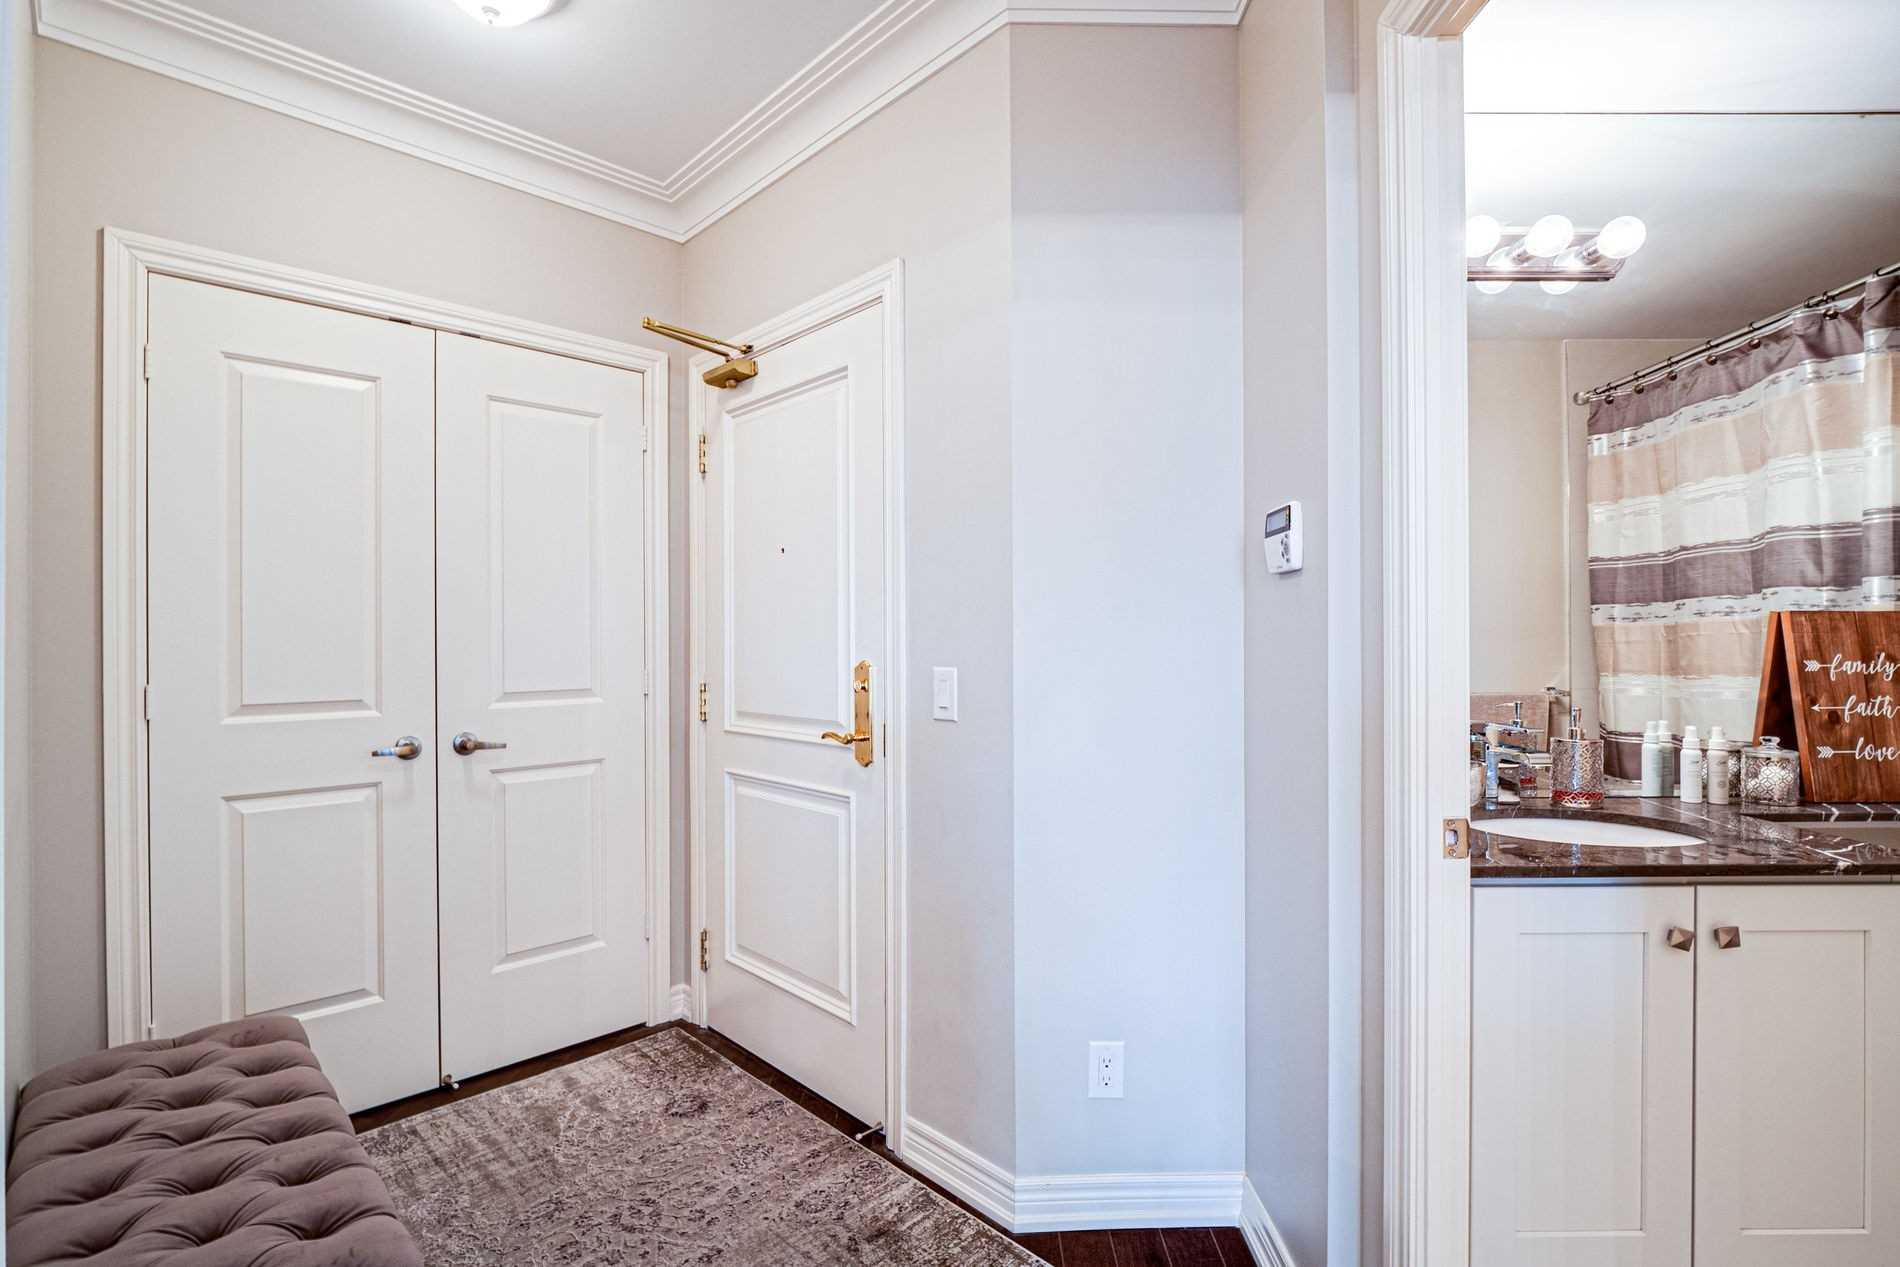 Image 20 of 40 showing inside of 2 Bedroom Condo Apt Apartment for Sale at 9255 Jane St Unit# 1702, Vaughan L6A0K1